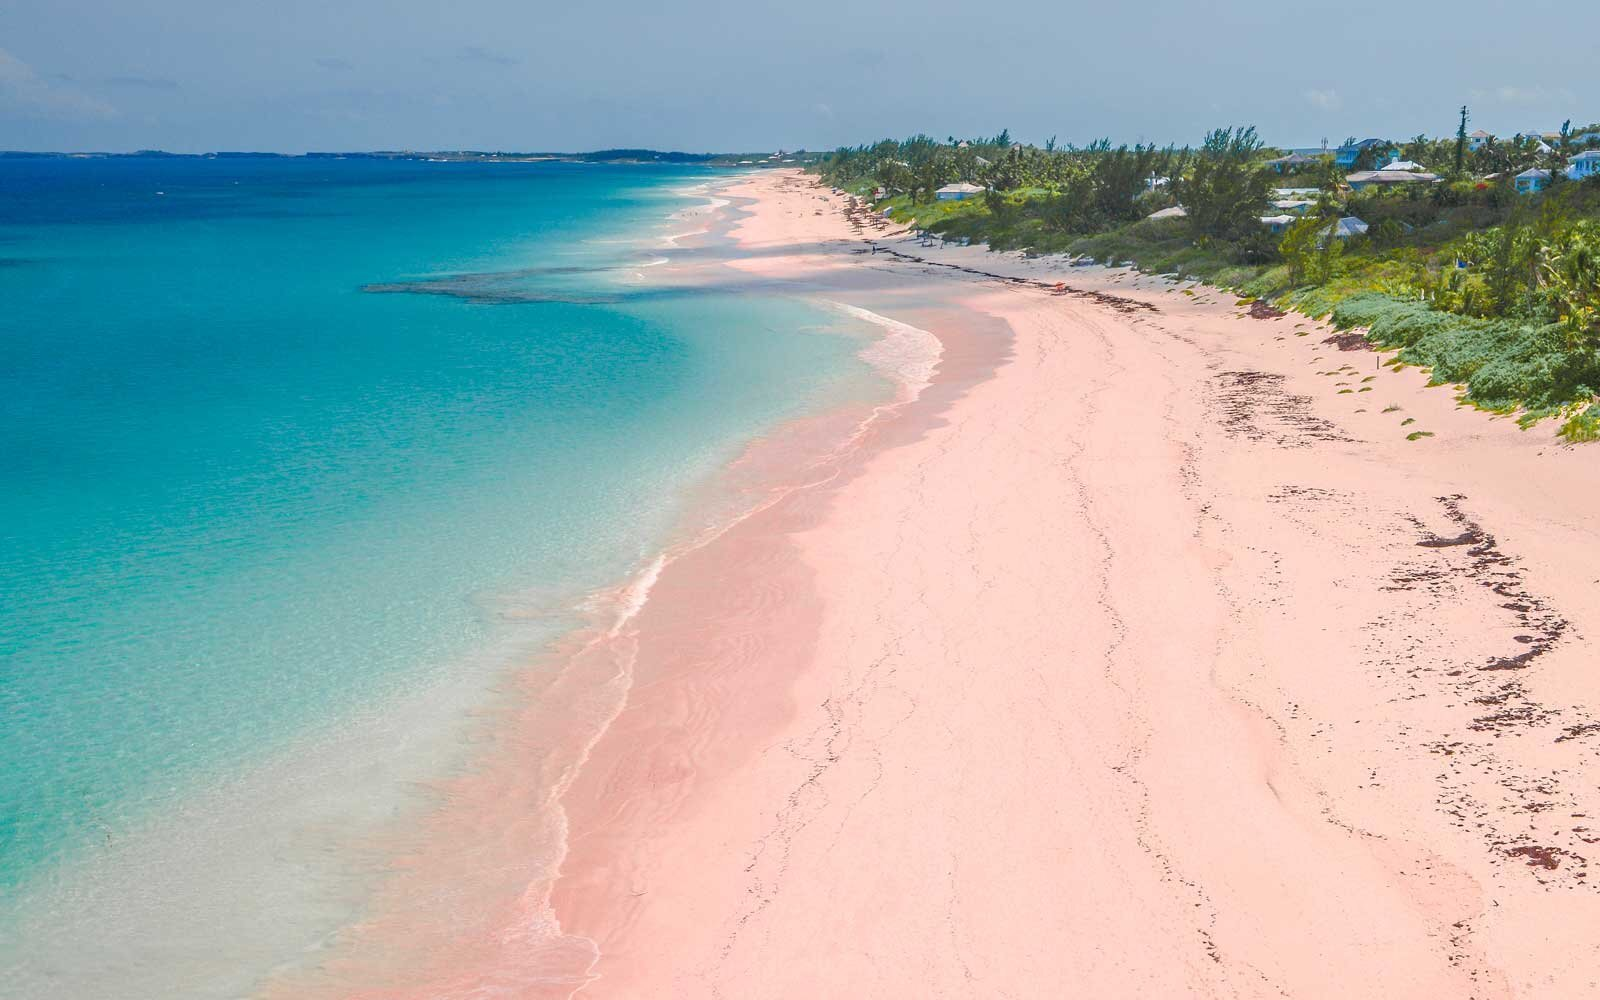 the world's most beautiful pink sand beaches | travel + leisure